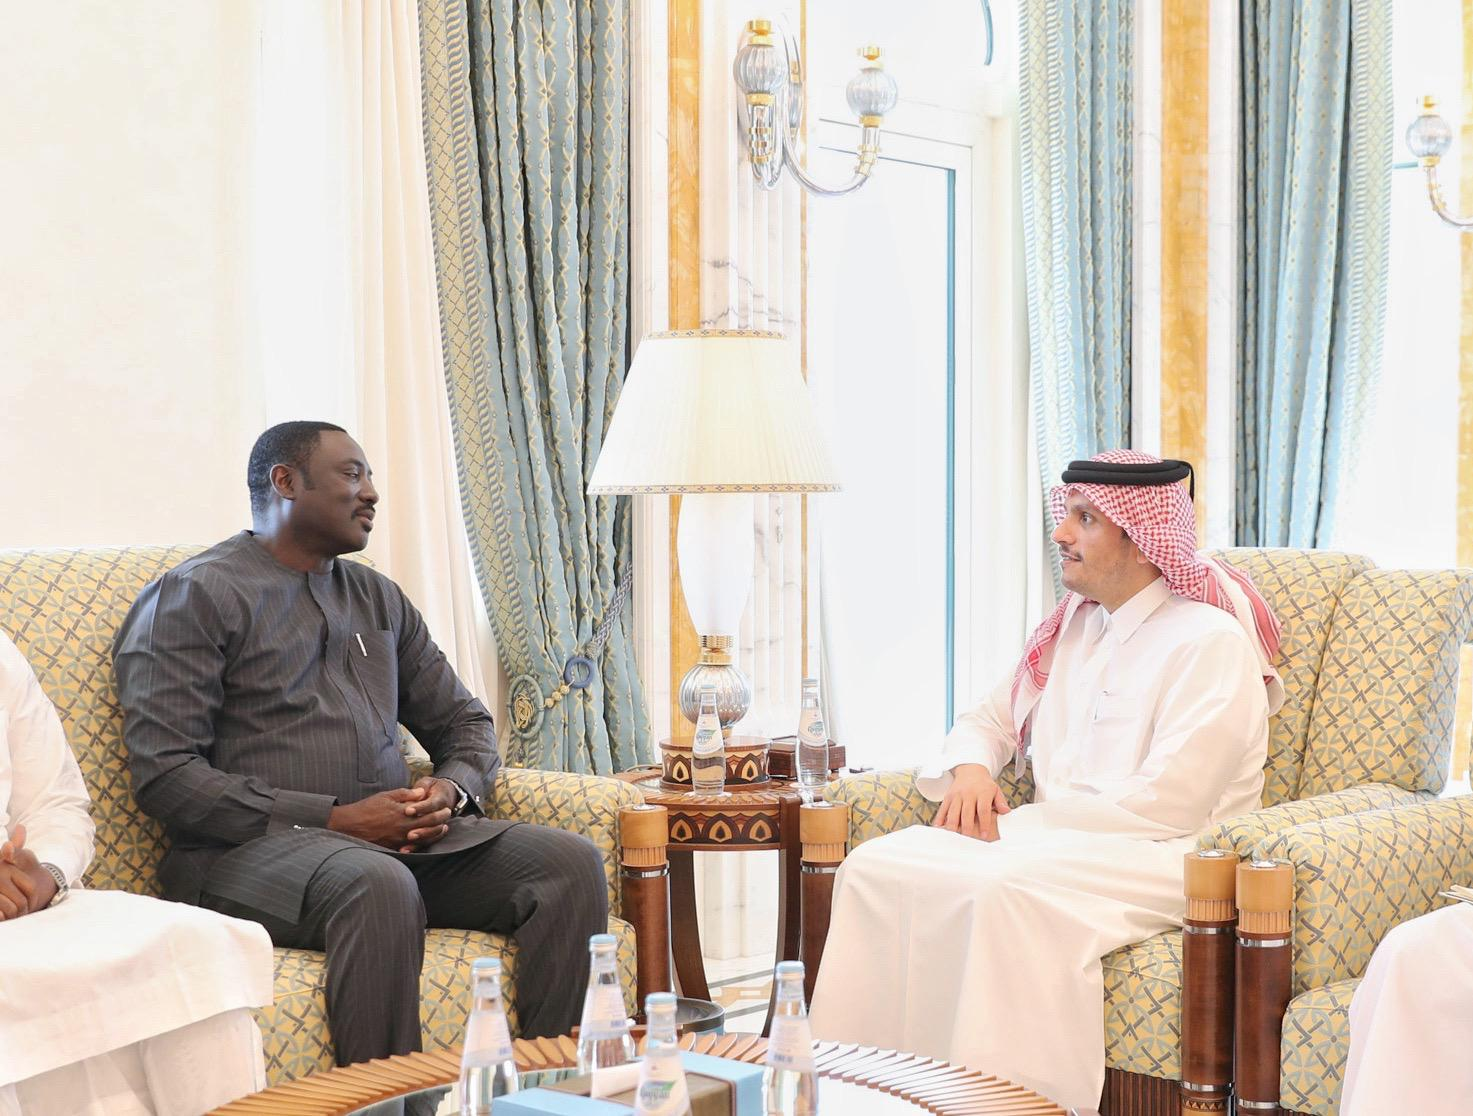 Deputy Prime Minister and Minister of Foreign Affairs Meets Foreign Minister of The Gambia